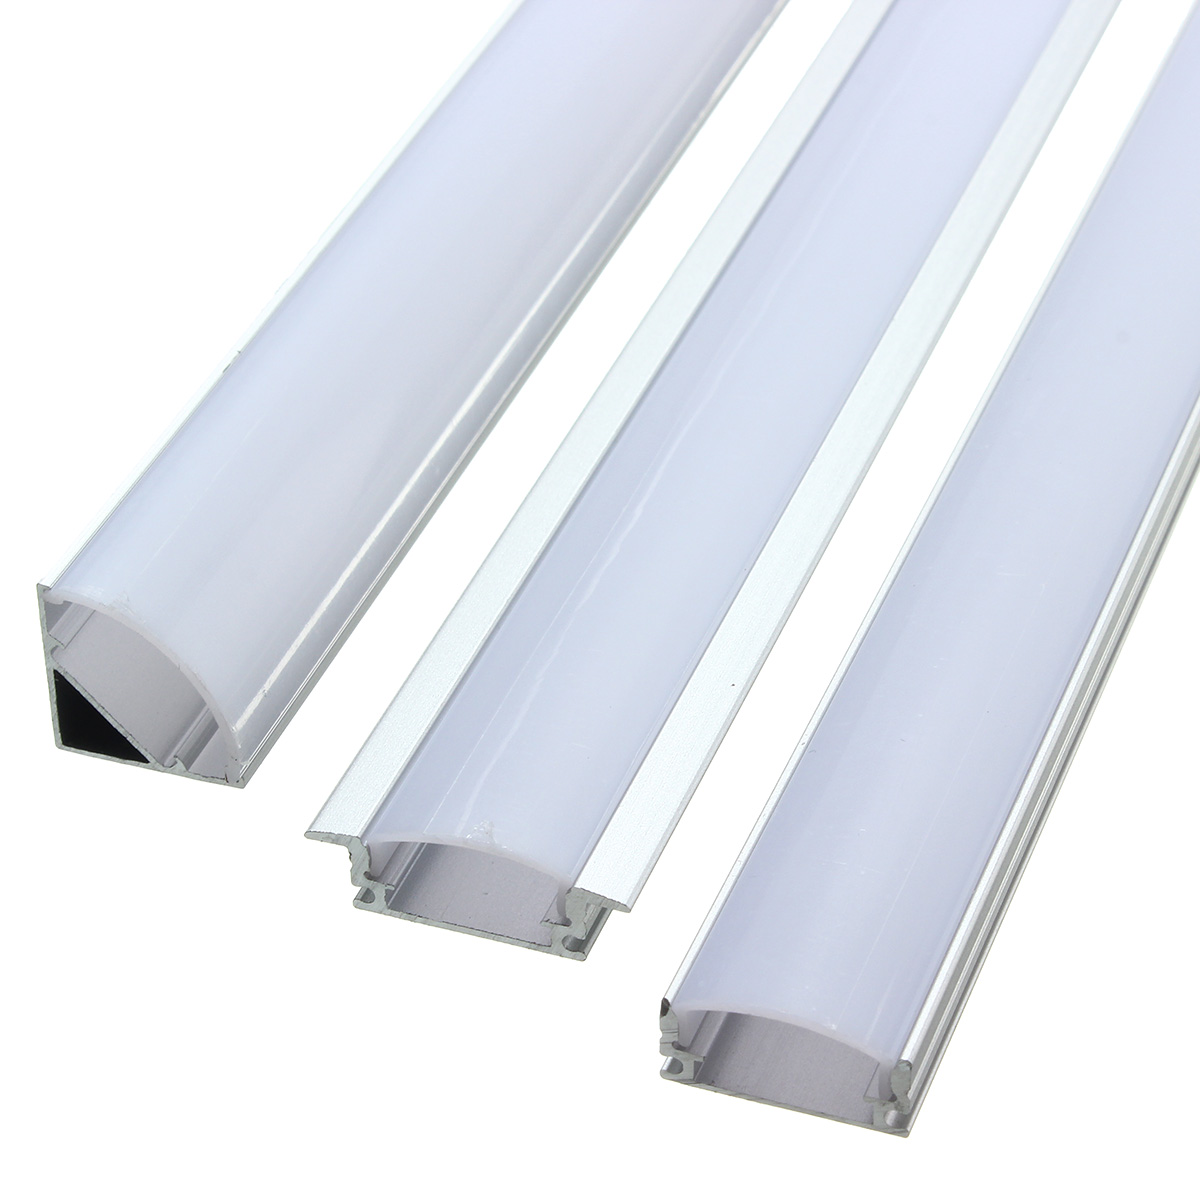 30CM Aluminum Channel Holder For LED Rigid Strip Light Bar